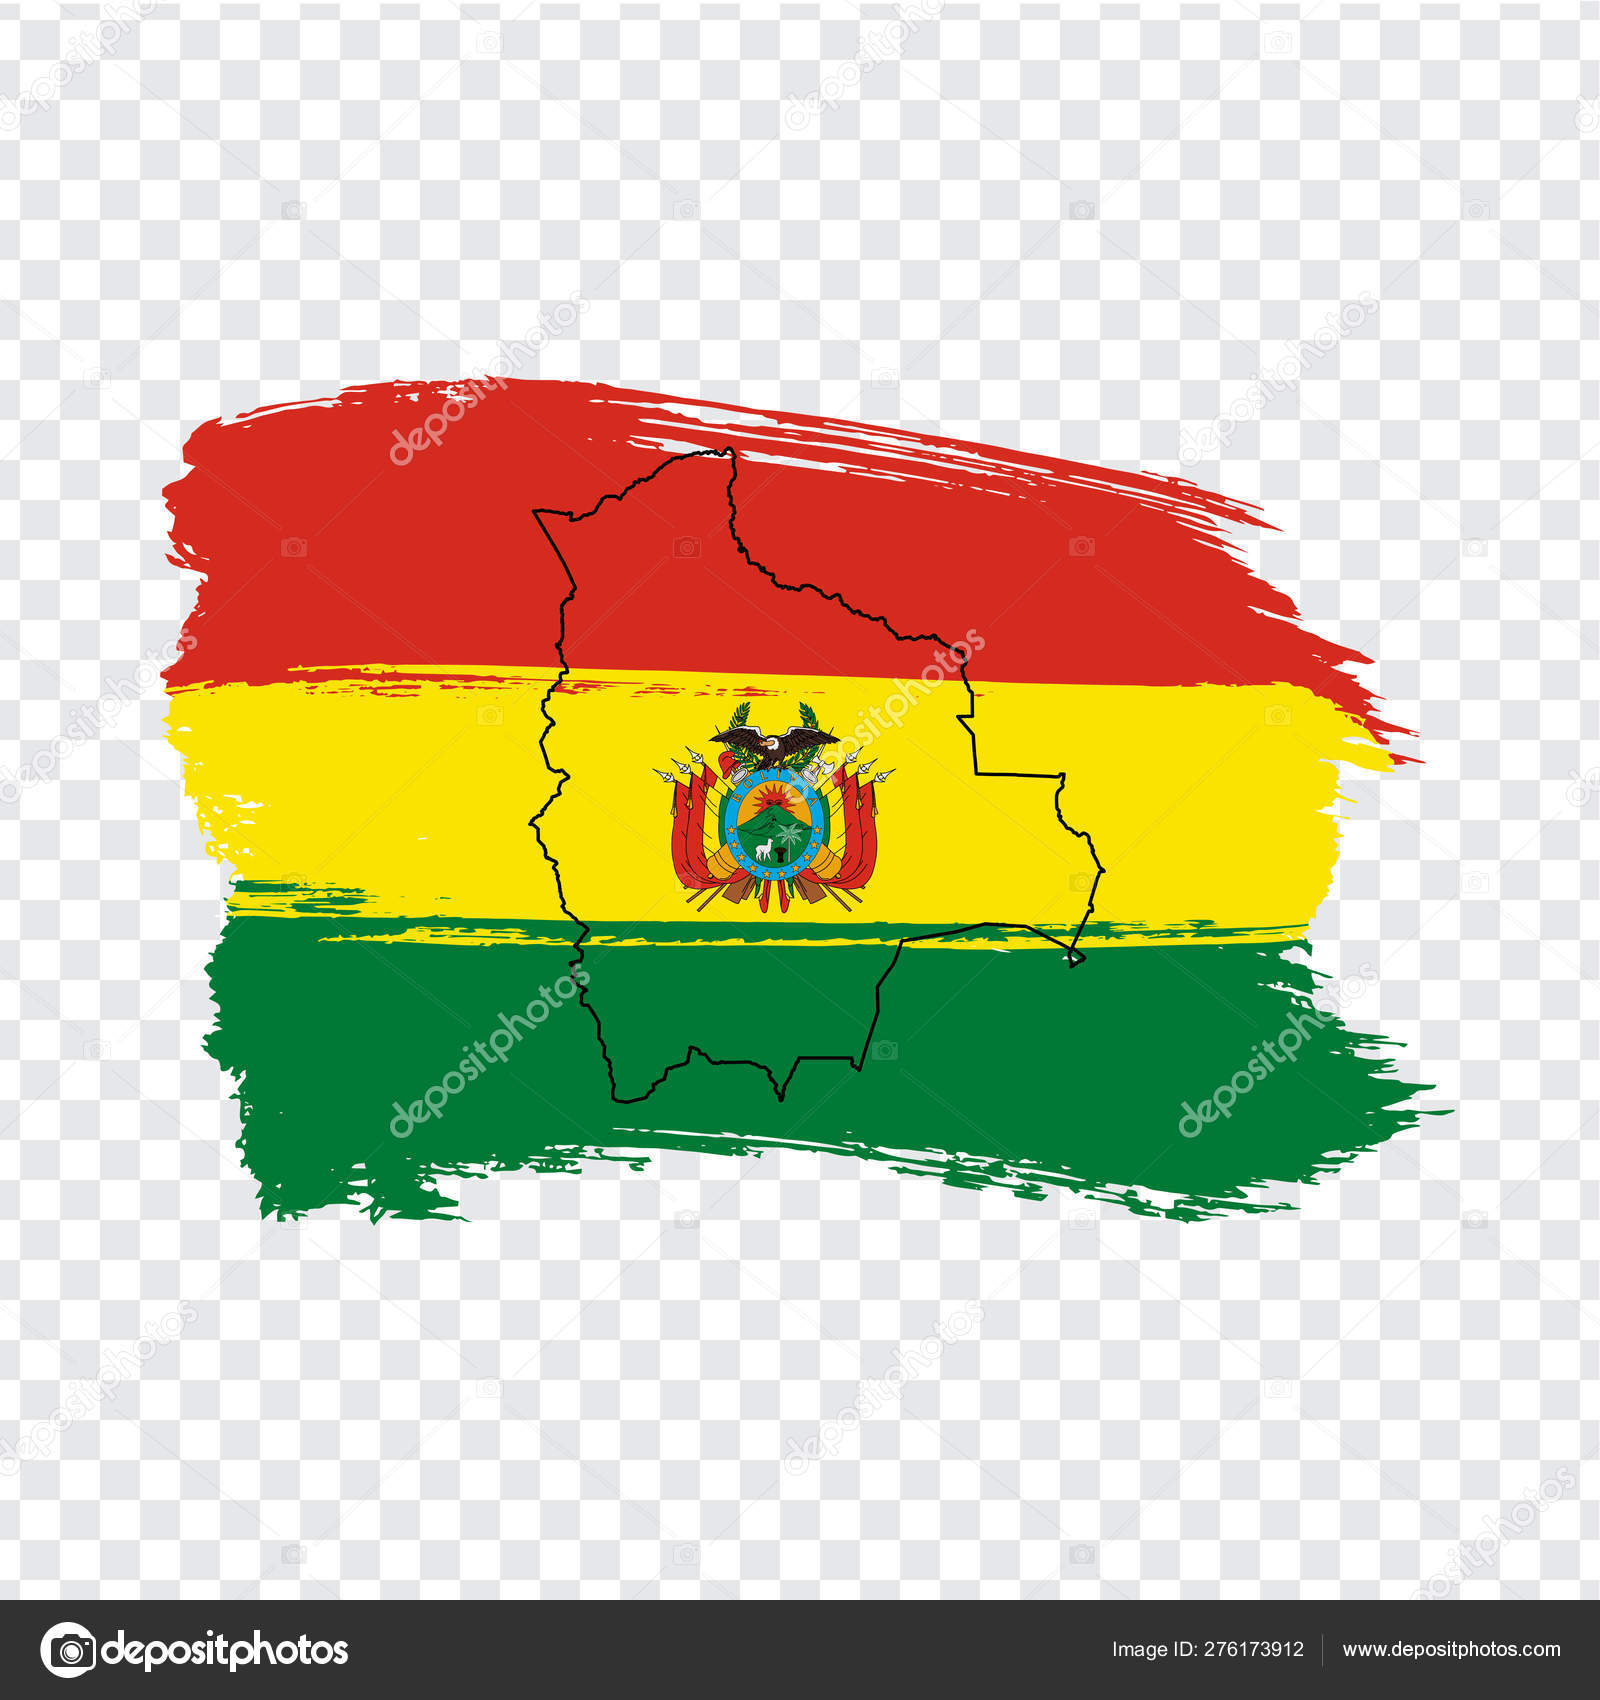 Flag Of Bolivia From Brush Strokes And Blank Map Bolivia High Quality Map Multinational State Of Bolivia And Flag On Transparent Background Stock Vector Vector Illustration Eps10 Stock Vector C Karinanh 276173912